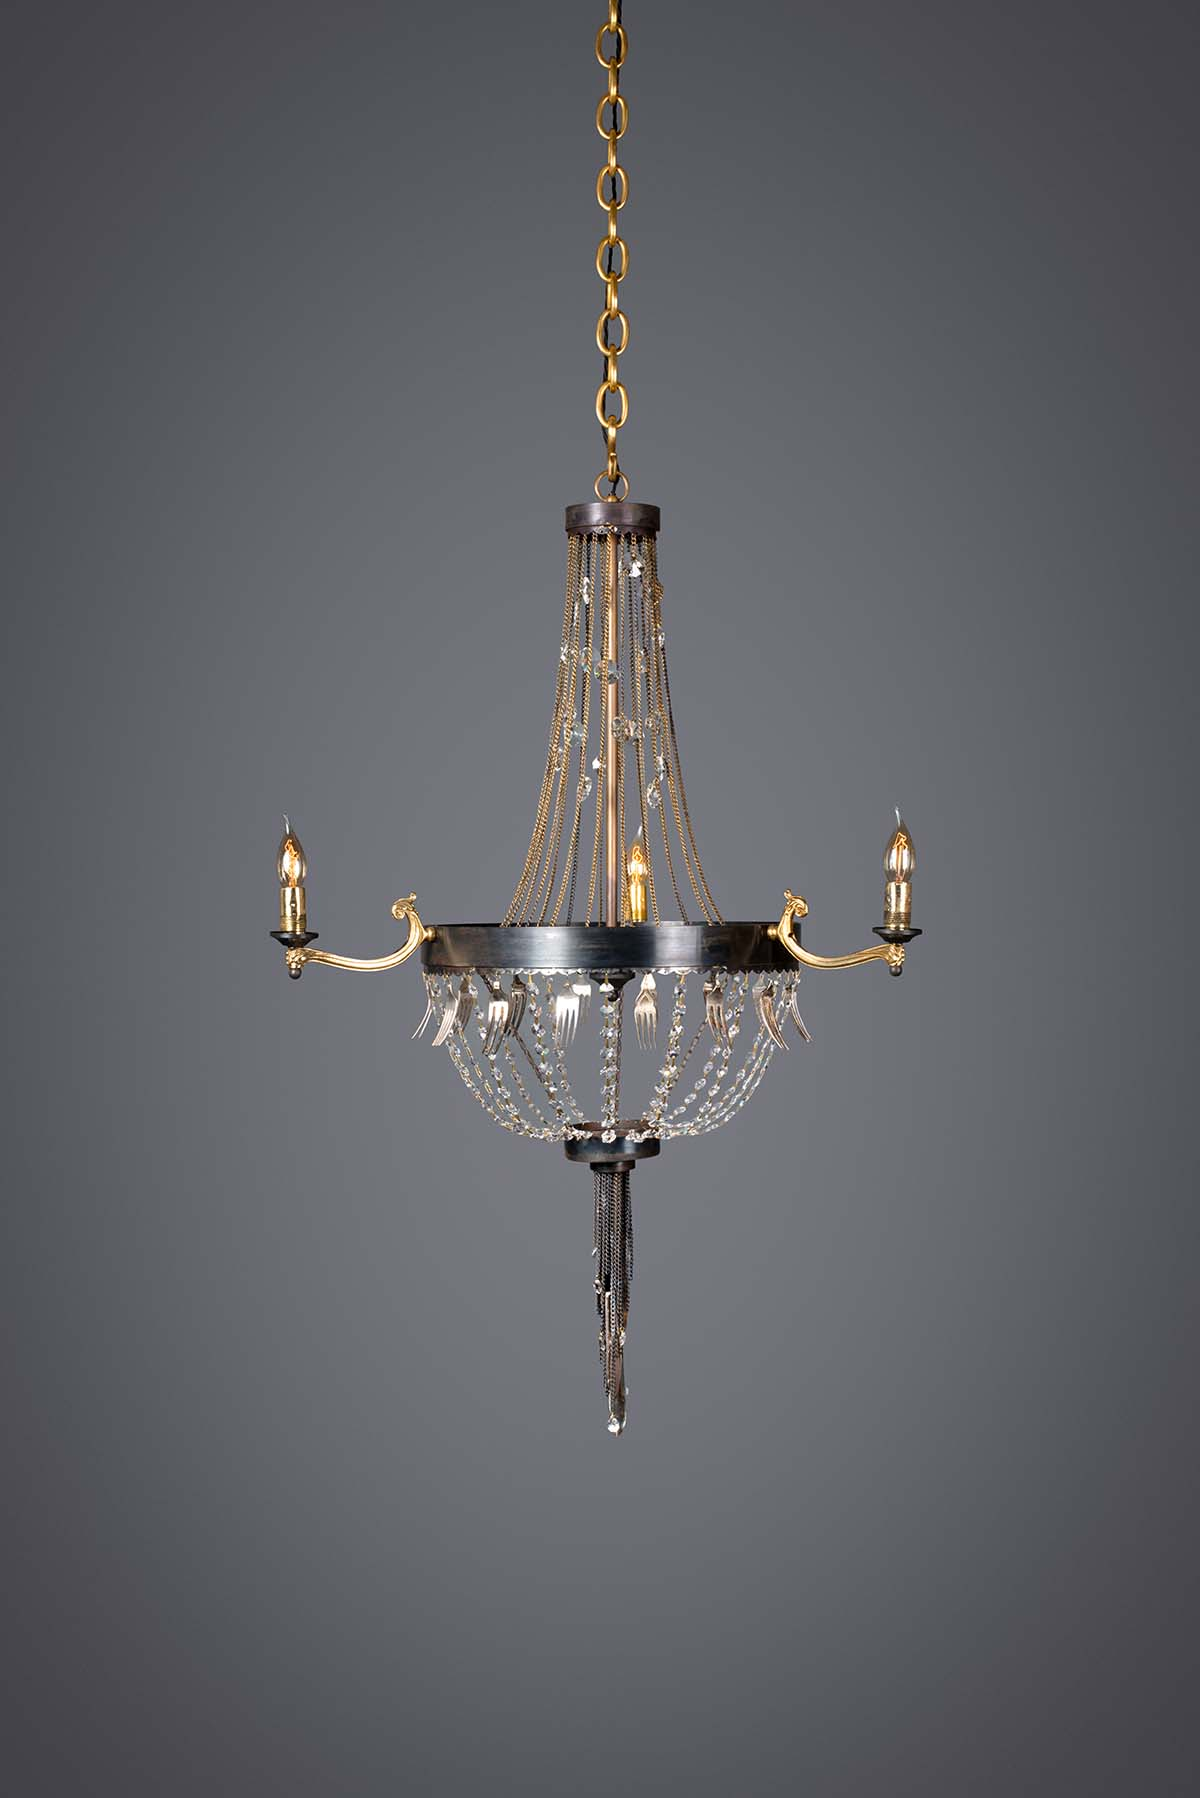 Ambrosia small chandelier made from Recycled materials and vintage cutlery. In an antique finish.